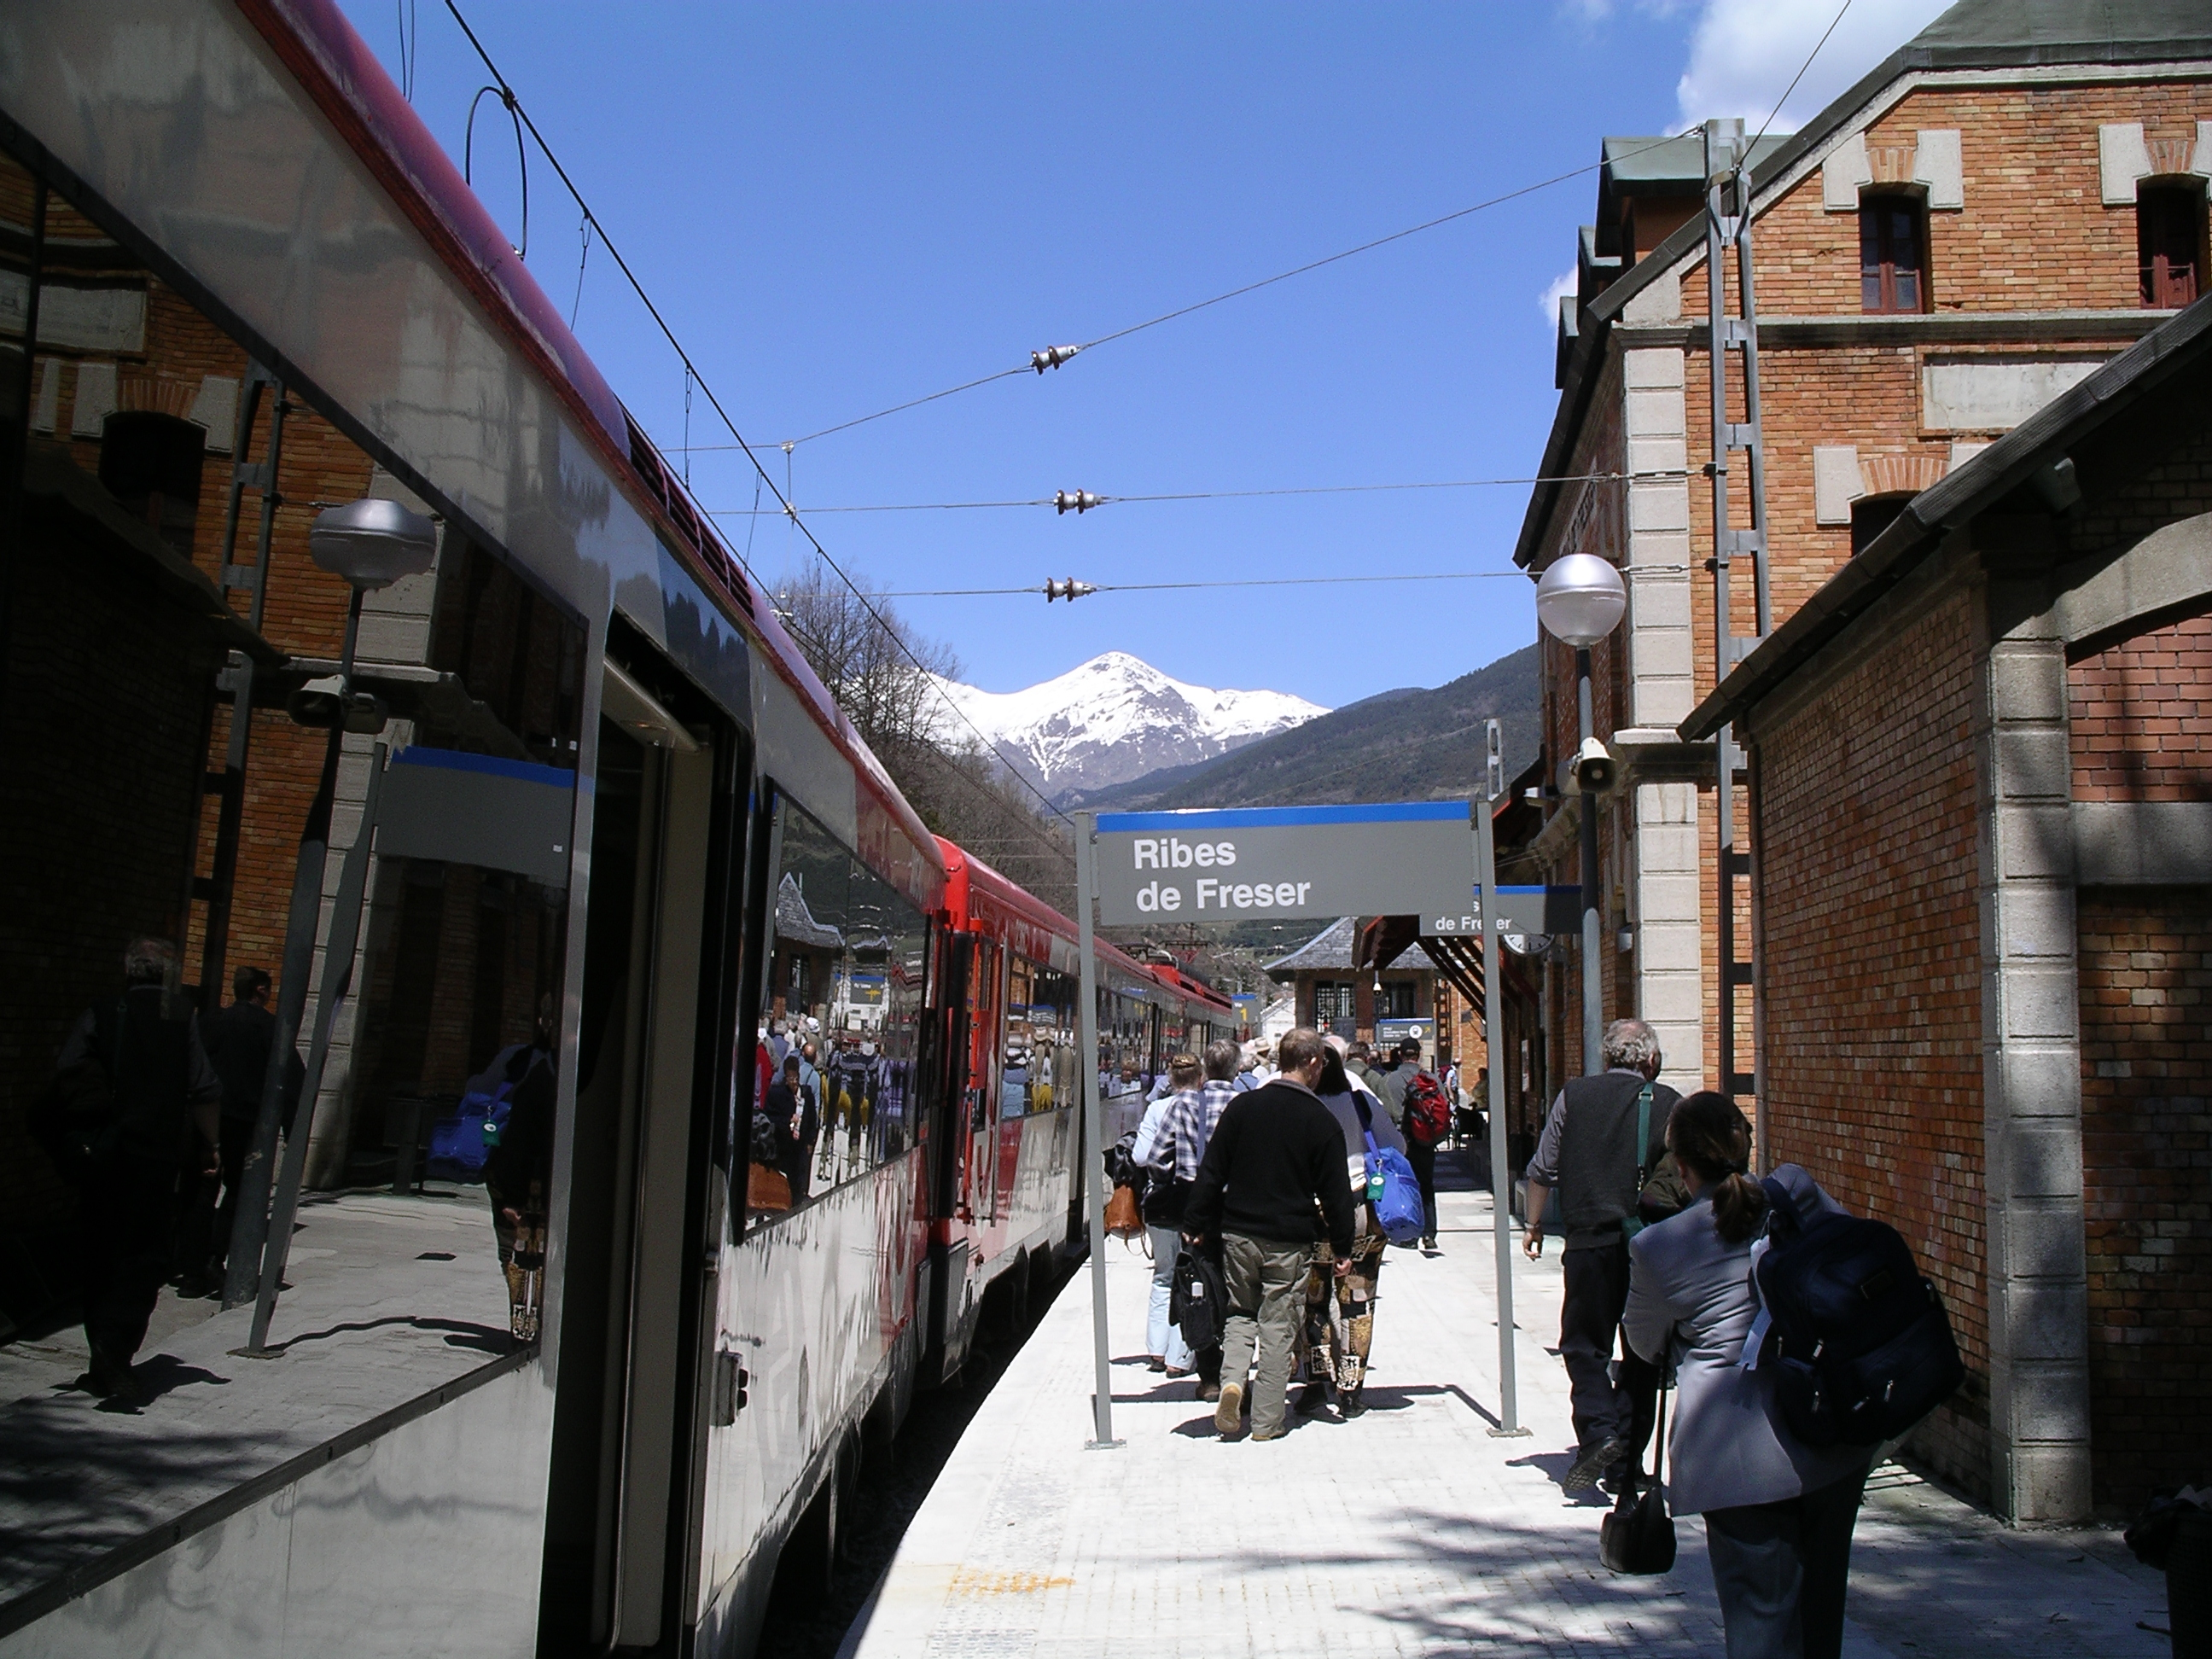 Ribes de Freser Spain  City pictures : Ribes de Freser station Wikimedia Commons